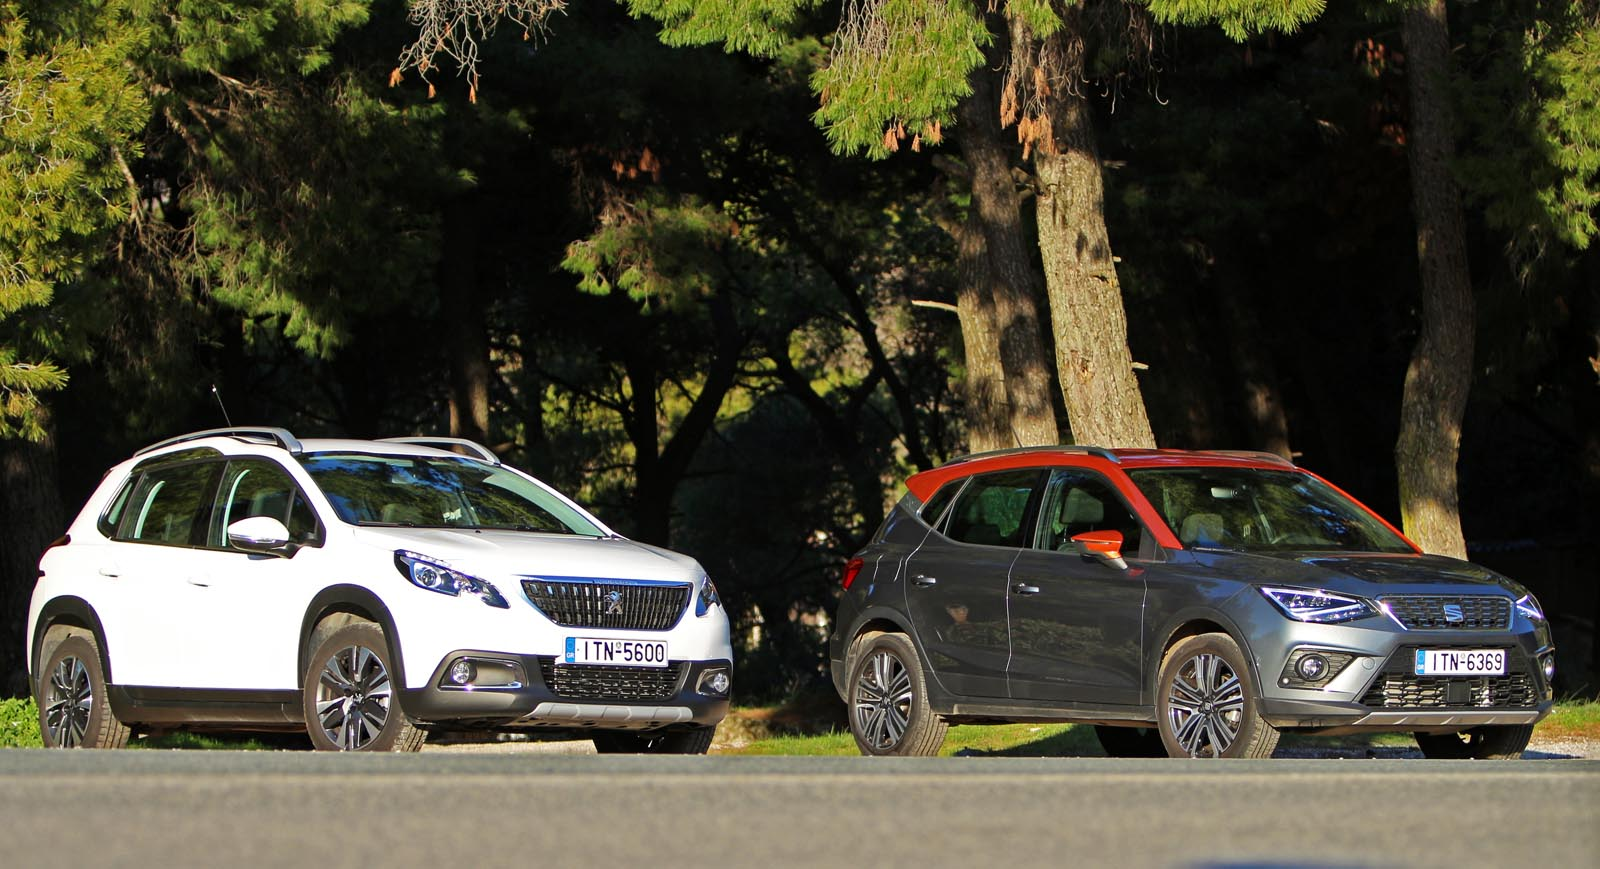 Photo of Peugeot 2008 1.2 PureTech vs Seat Arona 1.0 TSI [test drive]